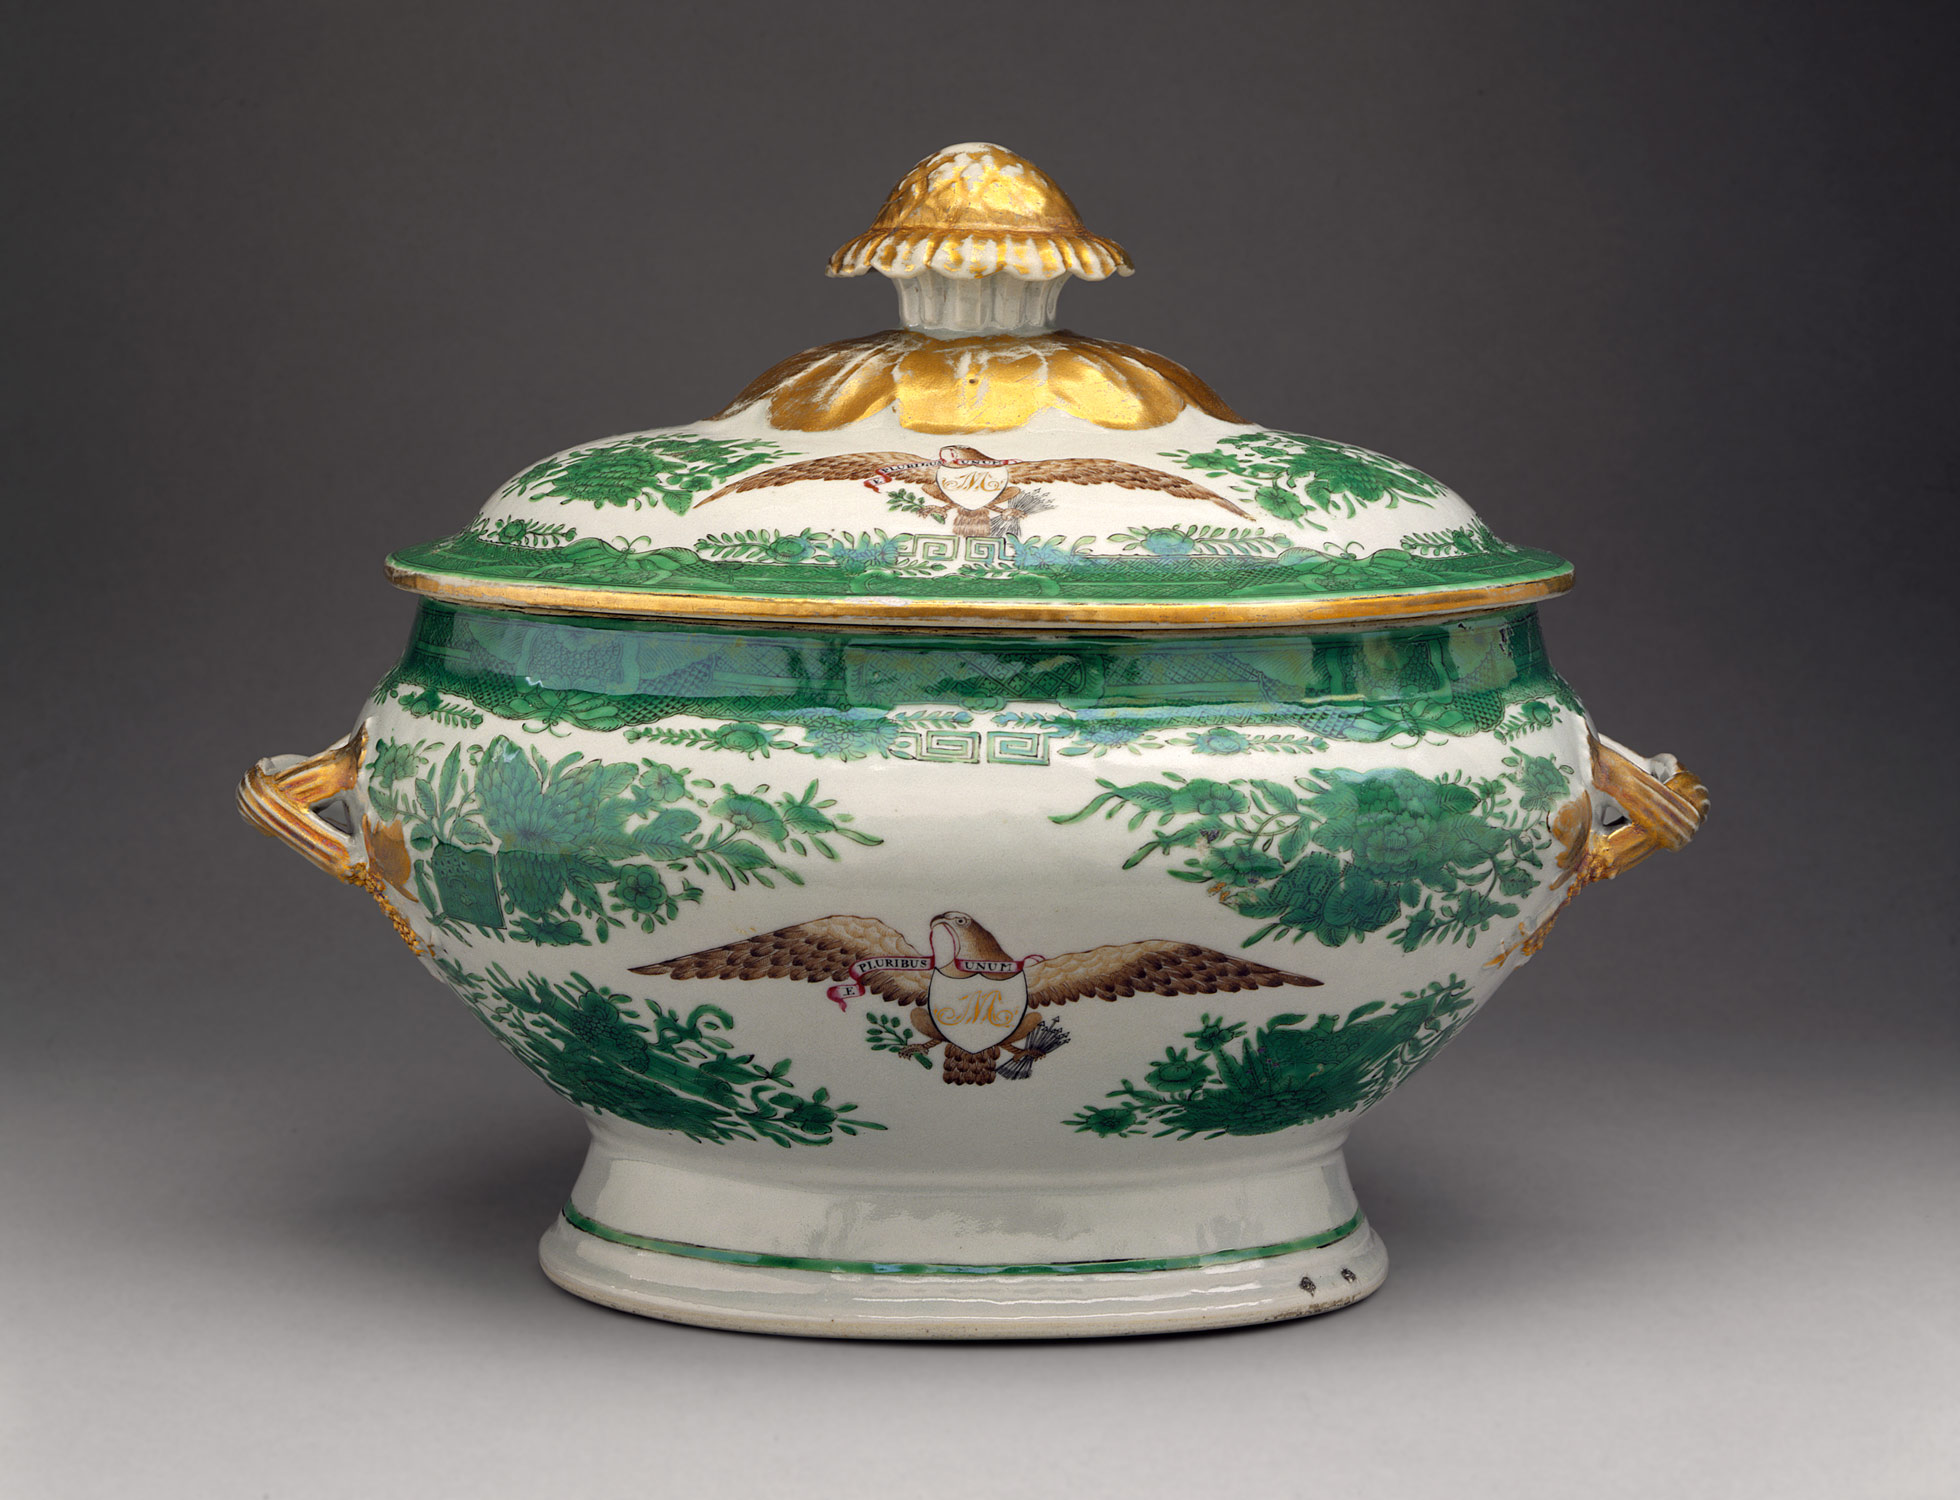 Tureen with cover (part of a service)